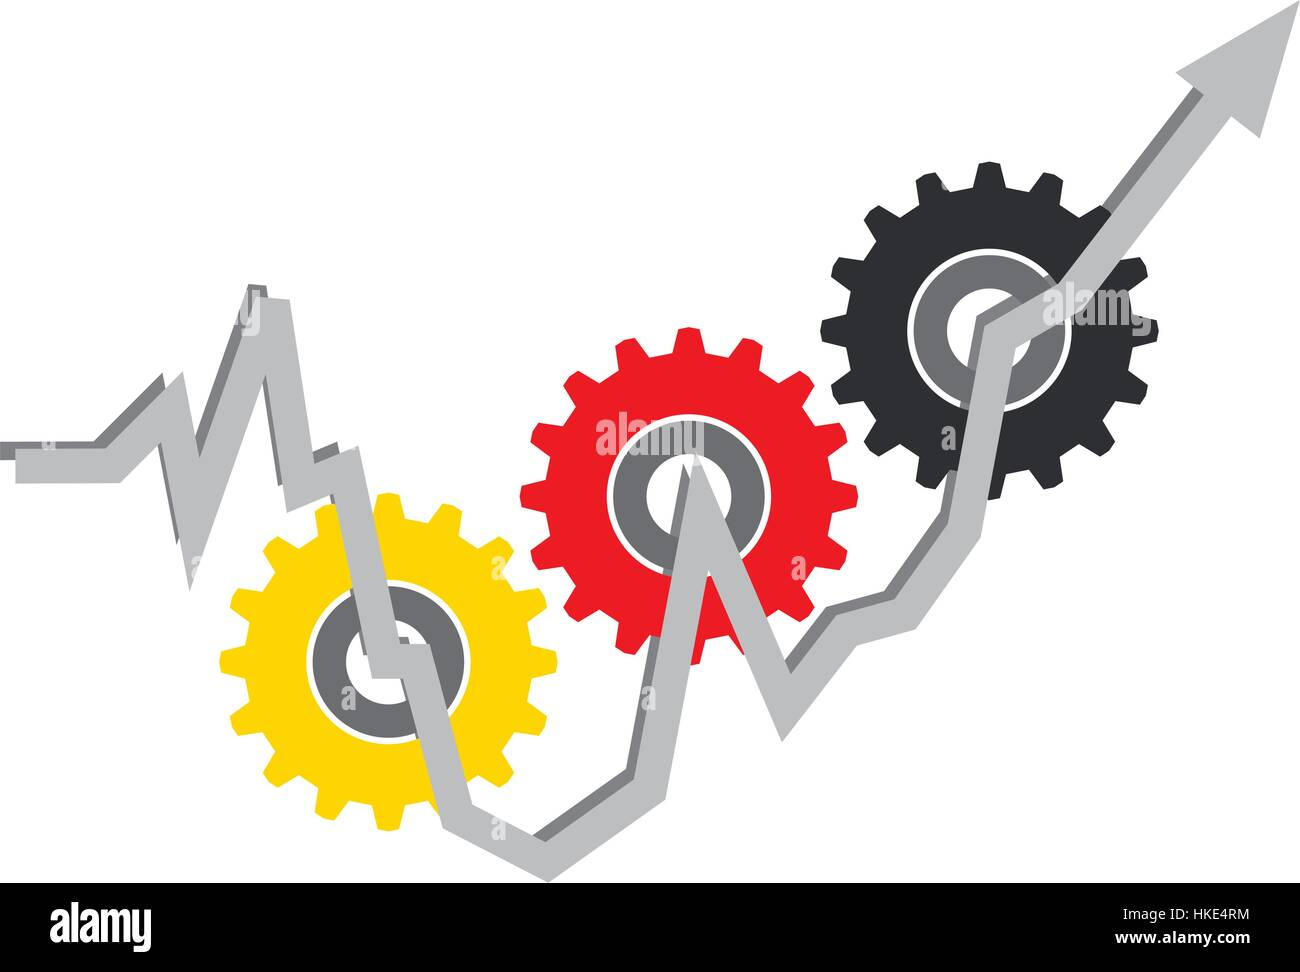 The economic and social upturn in Germany. Economic crisis and the economic upturn in Germany. Stock Vector